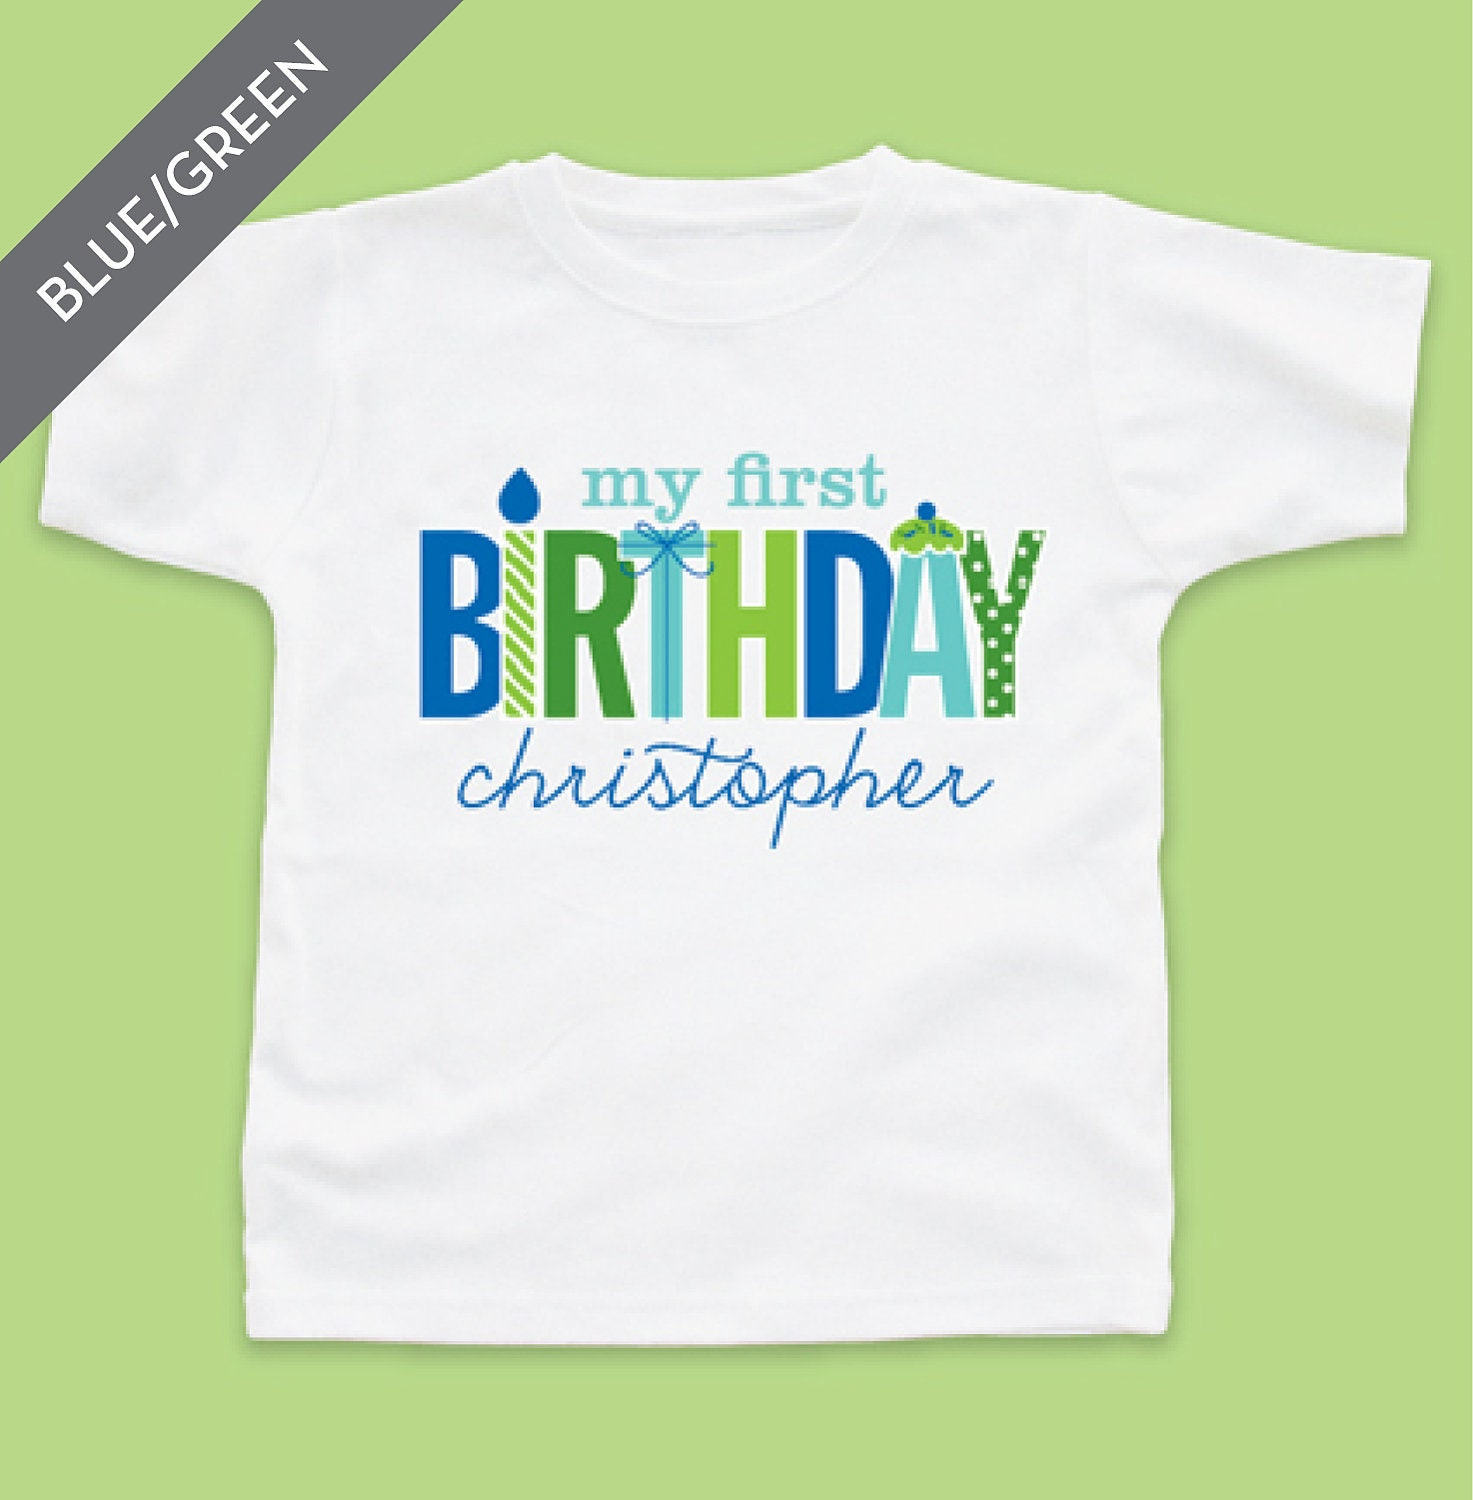 This Site Contains All About First Birthday Shirt Etsy Etsycom Shop For Anything